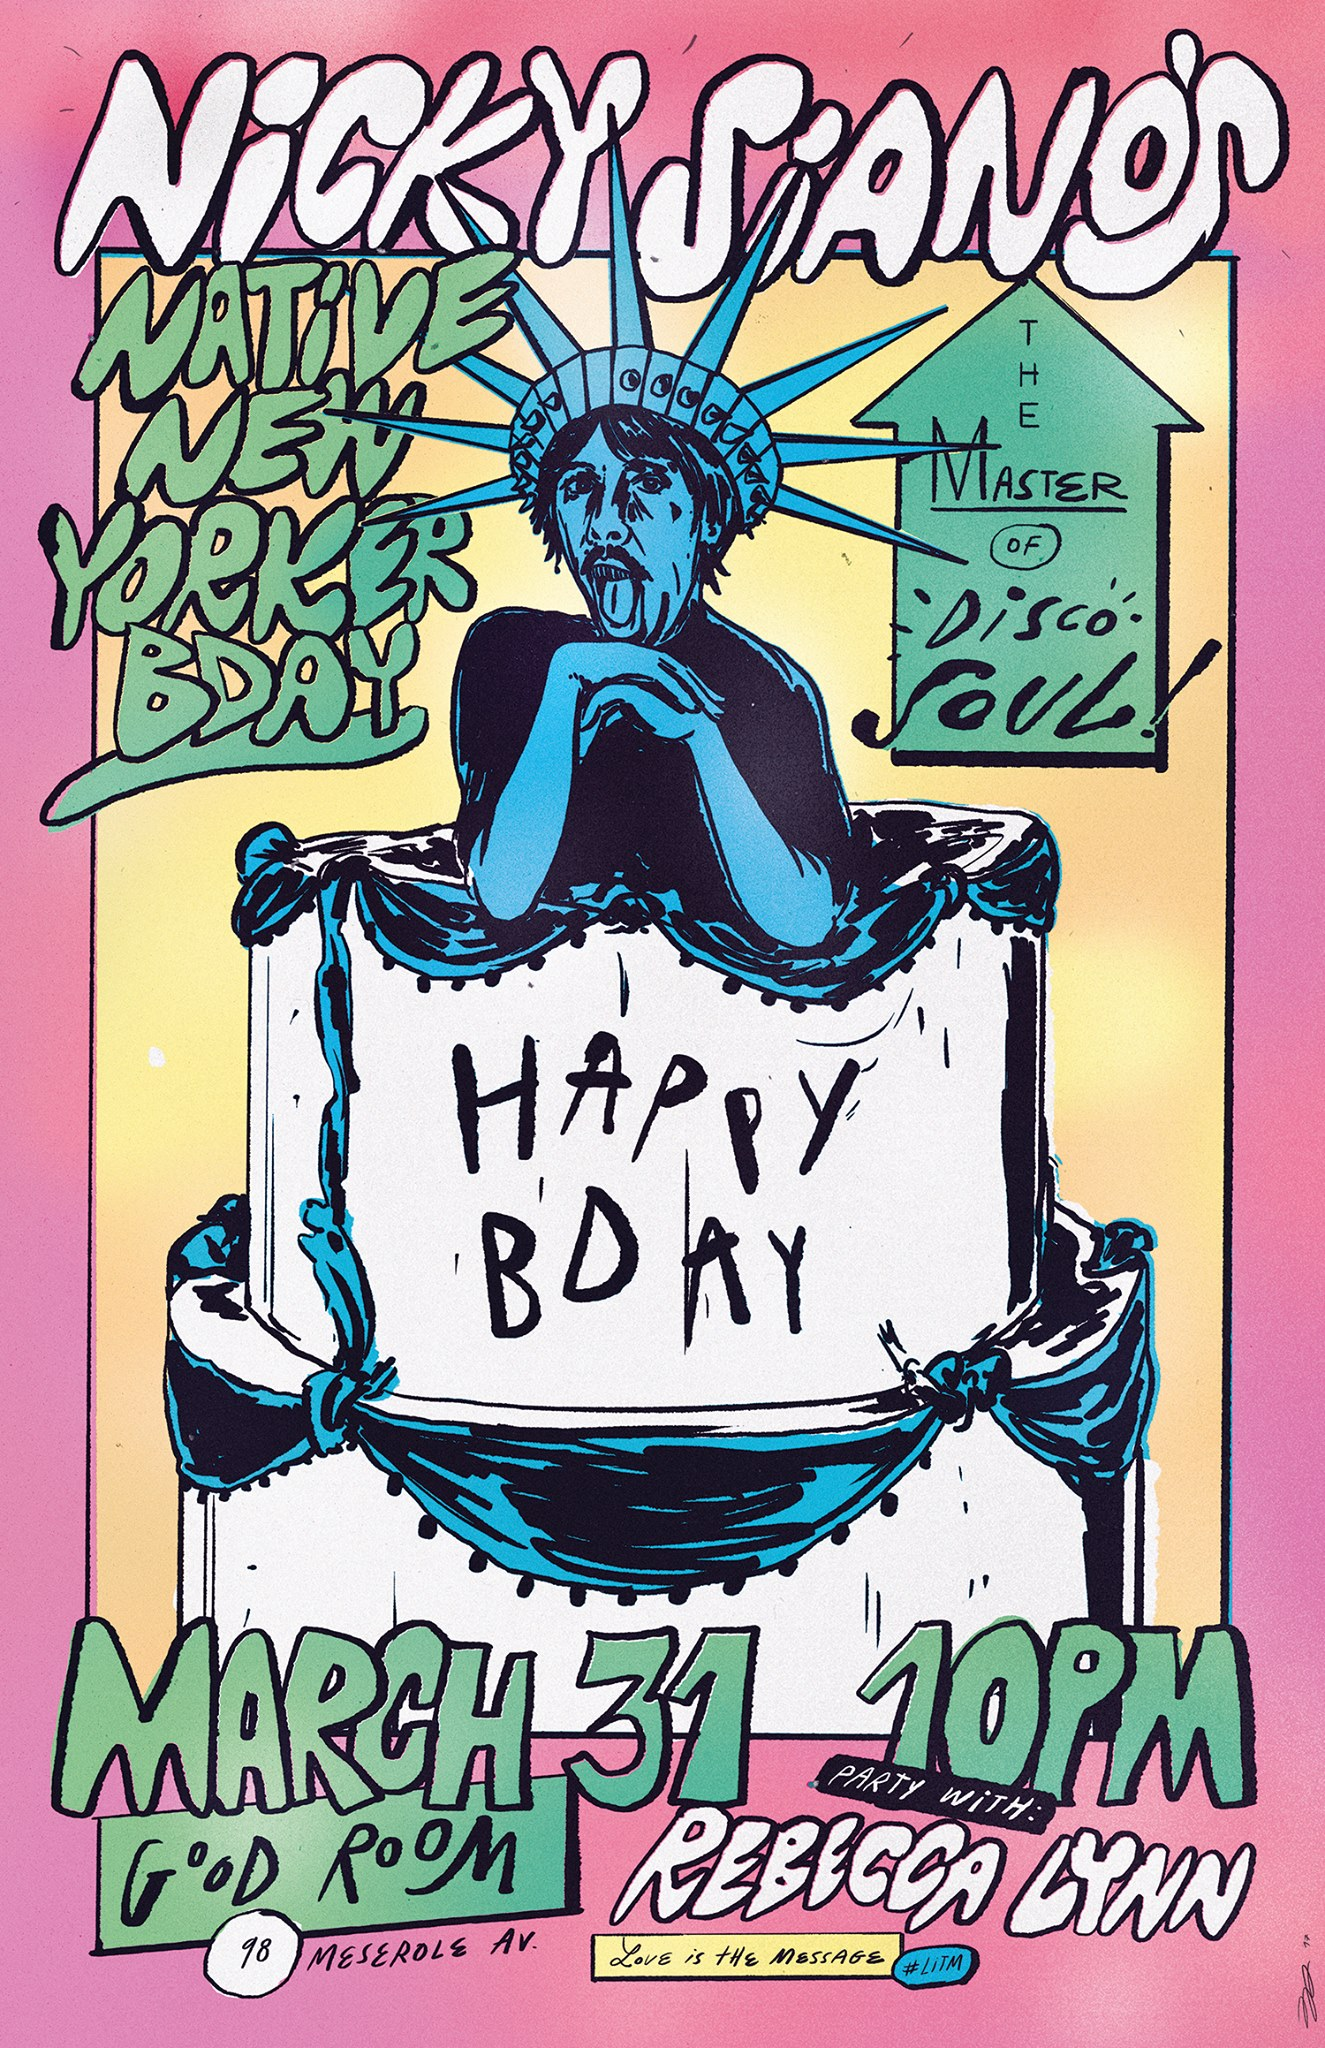 Nicky Siano's Native New Yorker B'day